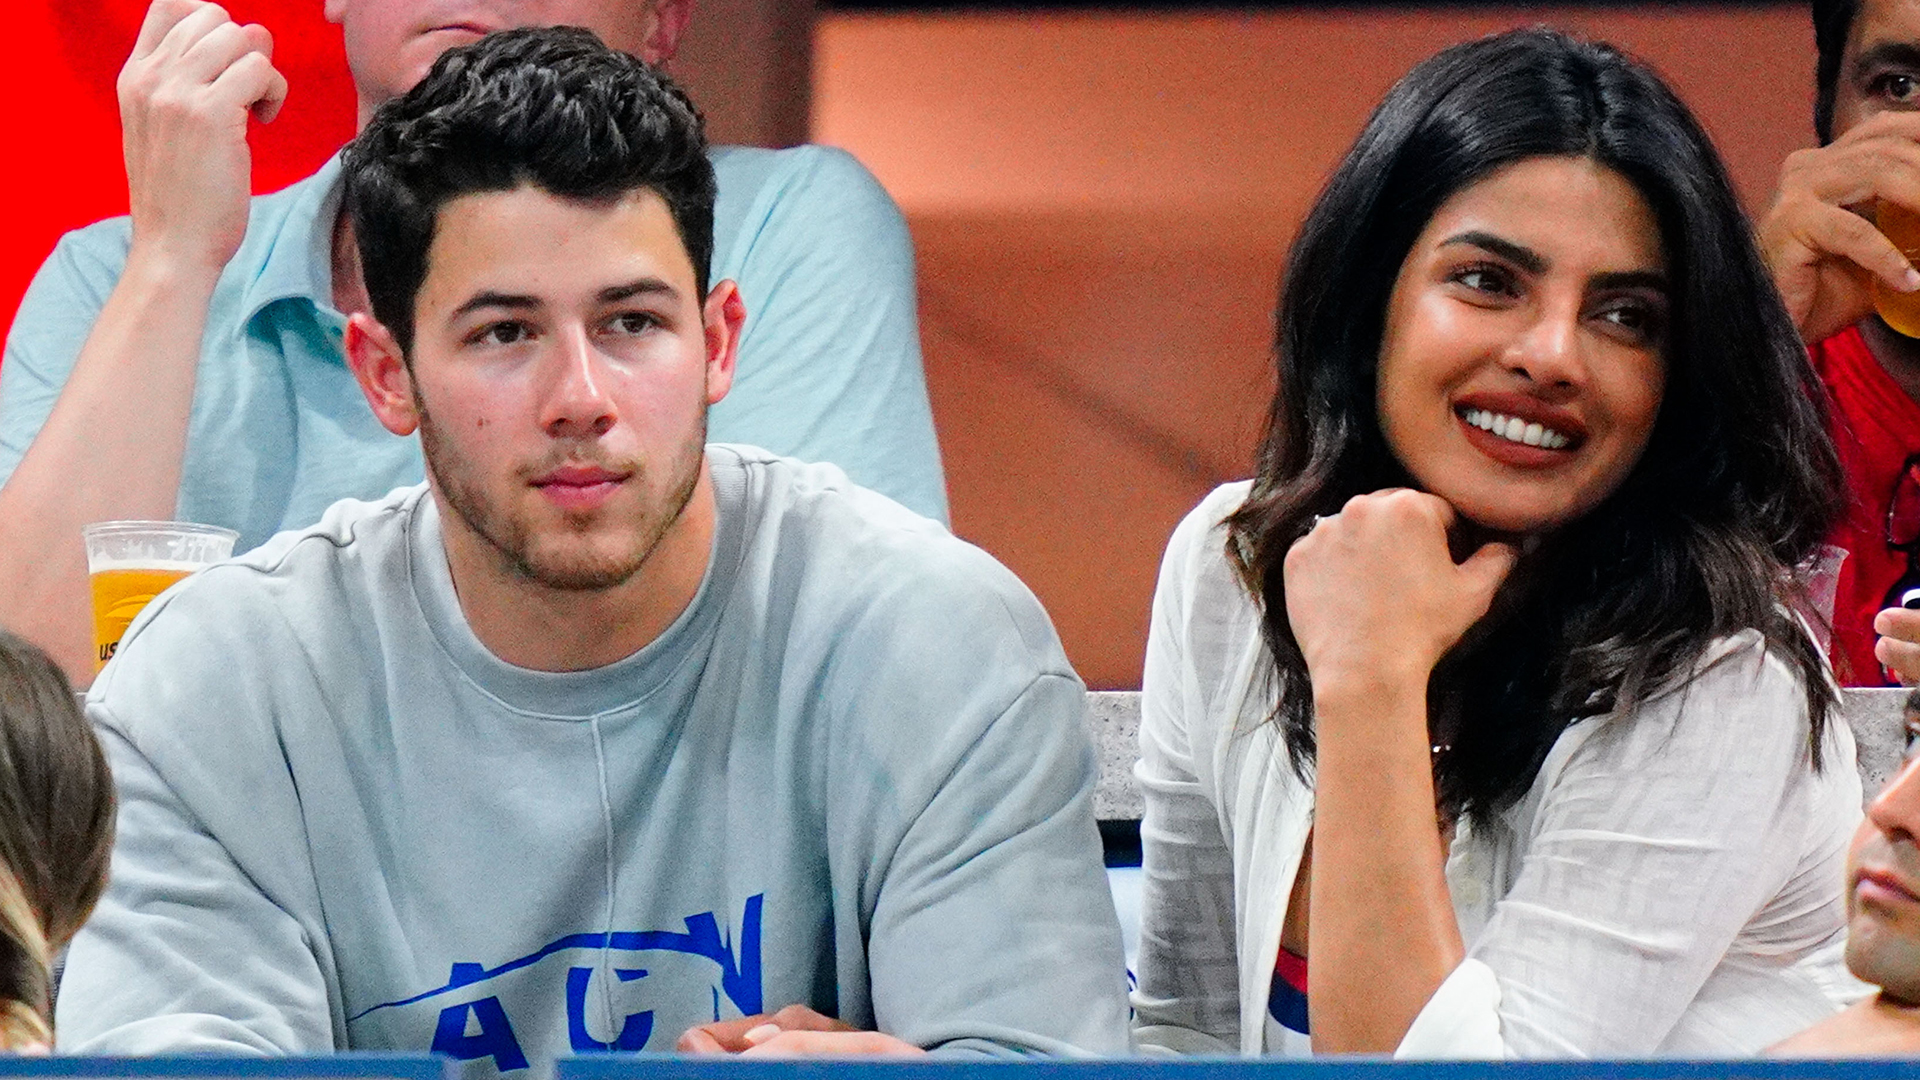 Nick Jonas And Priyanka Chopra To Sue US Magazine For Spreading Divorce Rumors